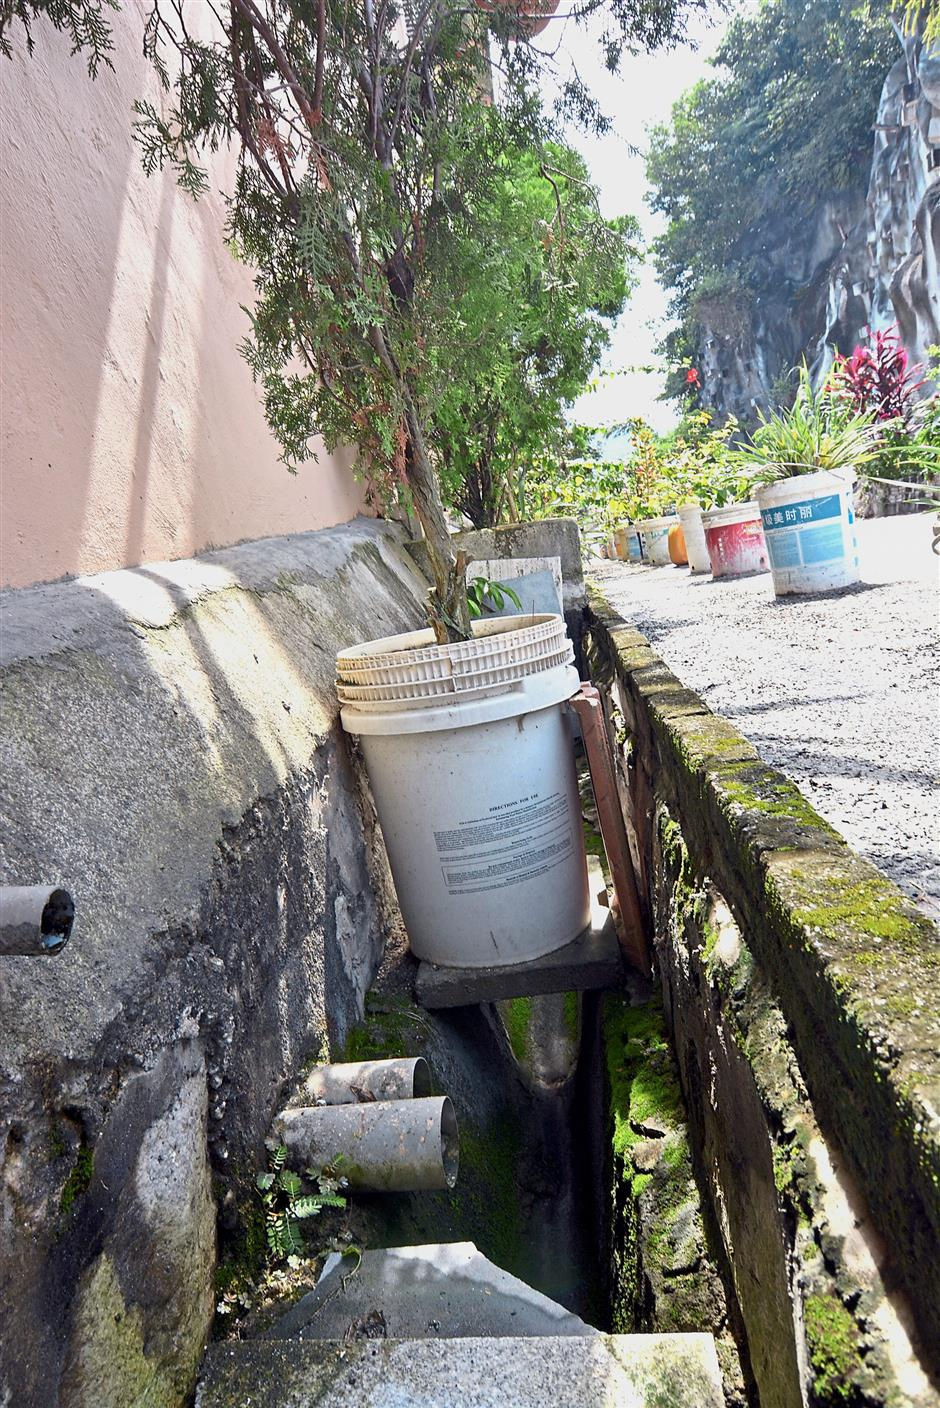 Drains that are blocked with potted plants make it more difficult for cleaning works to take place.